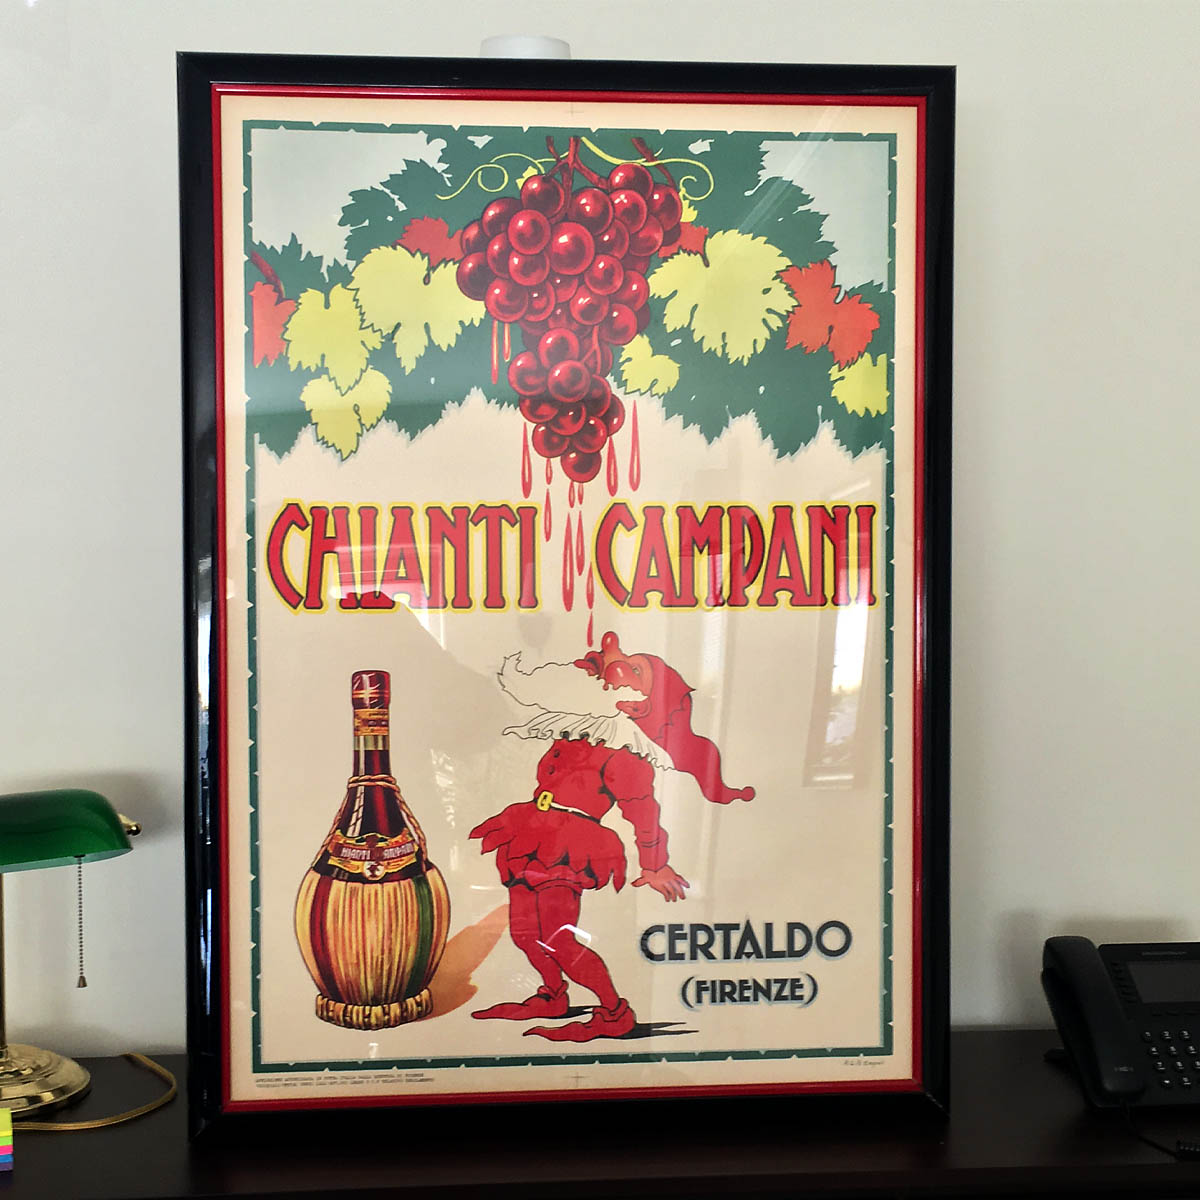 "Vintage 1940s Wine Poster - Vintage advertising, especially for European spirits, is very popular these days. This example generously provided by the Gleason Family is framed and ready to liven up any at-home entertaining area. This print for ""Chianti Campani"" of Italy is circa 1940s, and not a modern reproduction. Cin cin!"